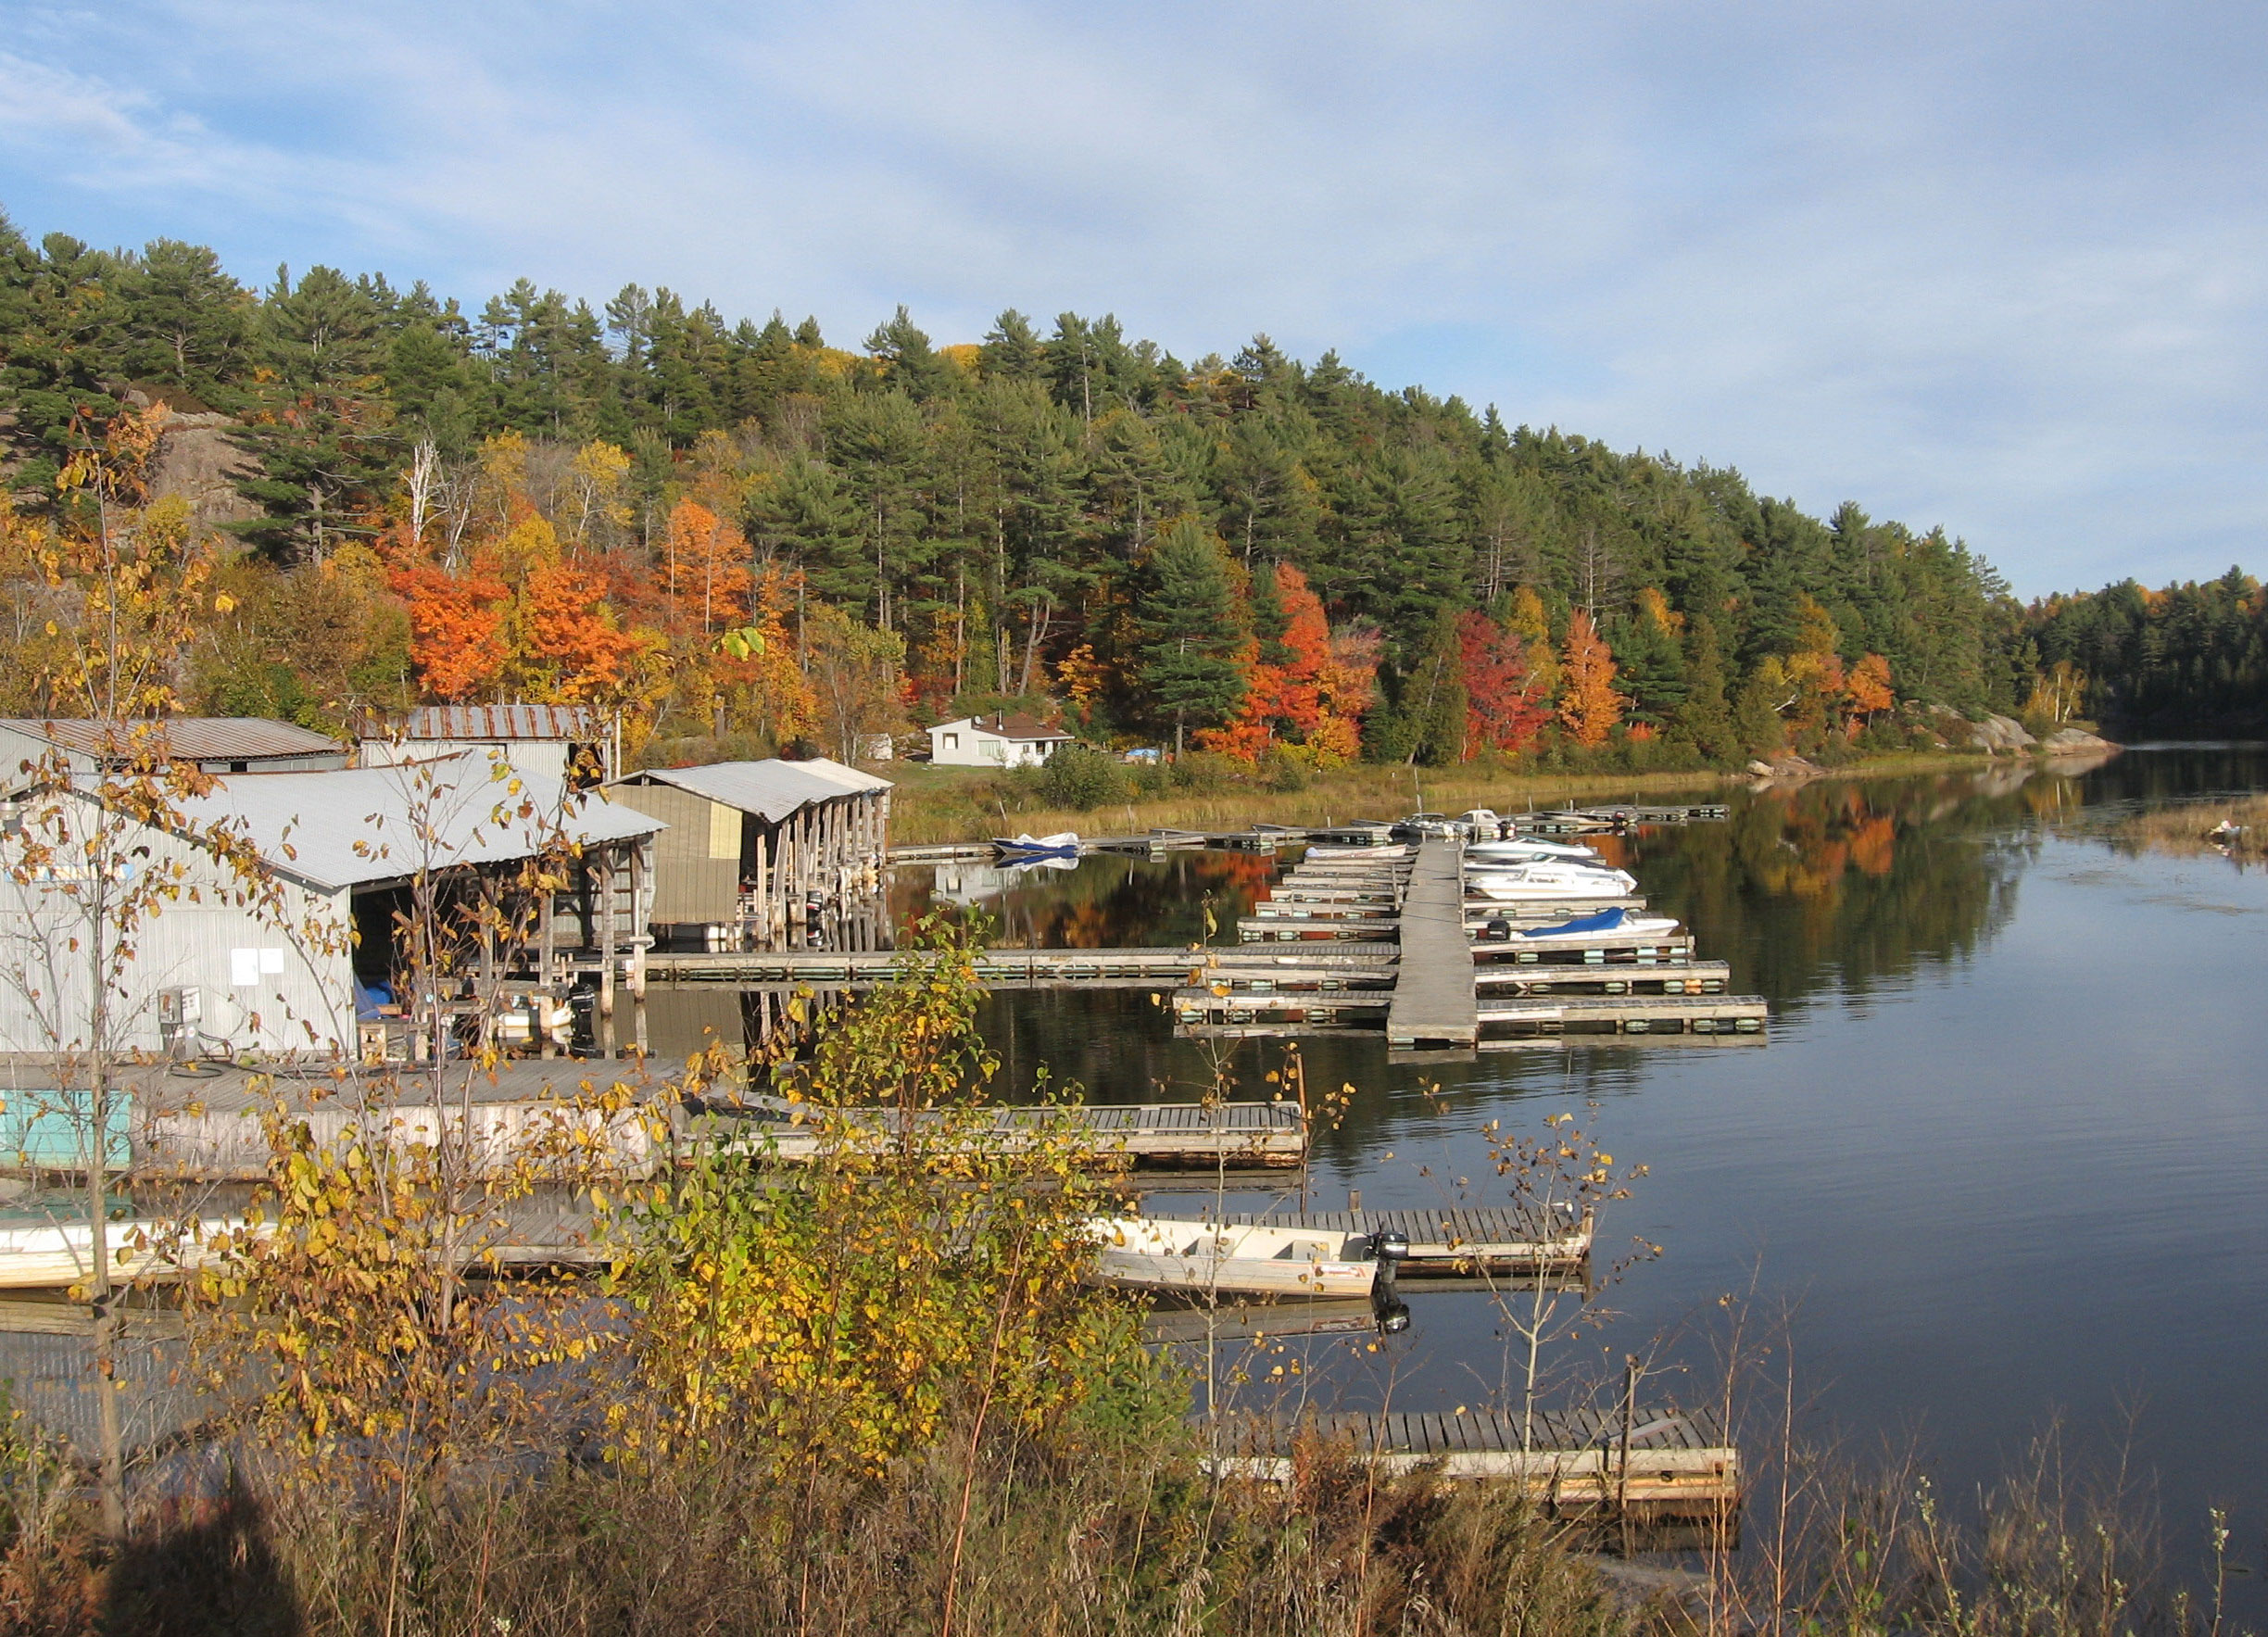 keymarina, about 50km south of Sudbury